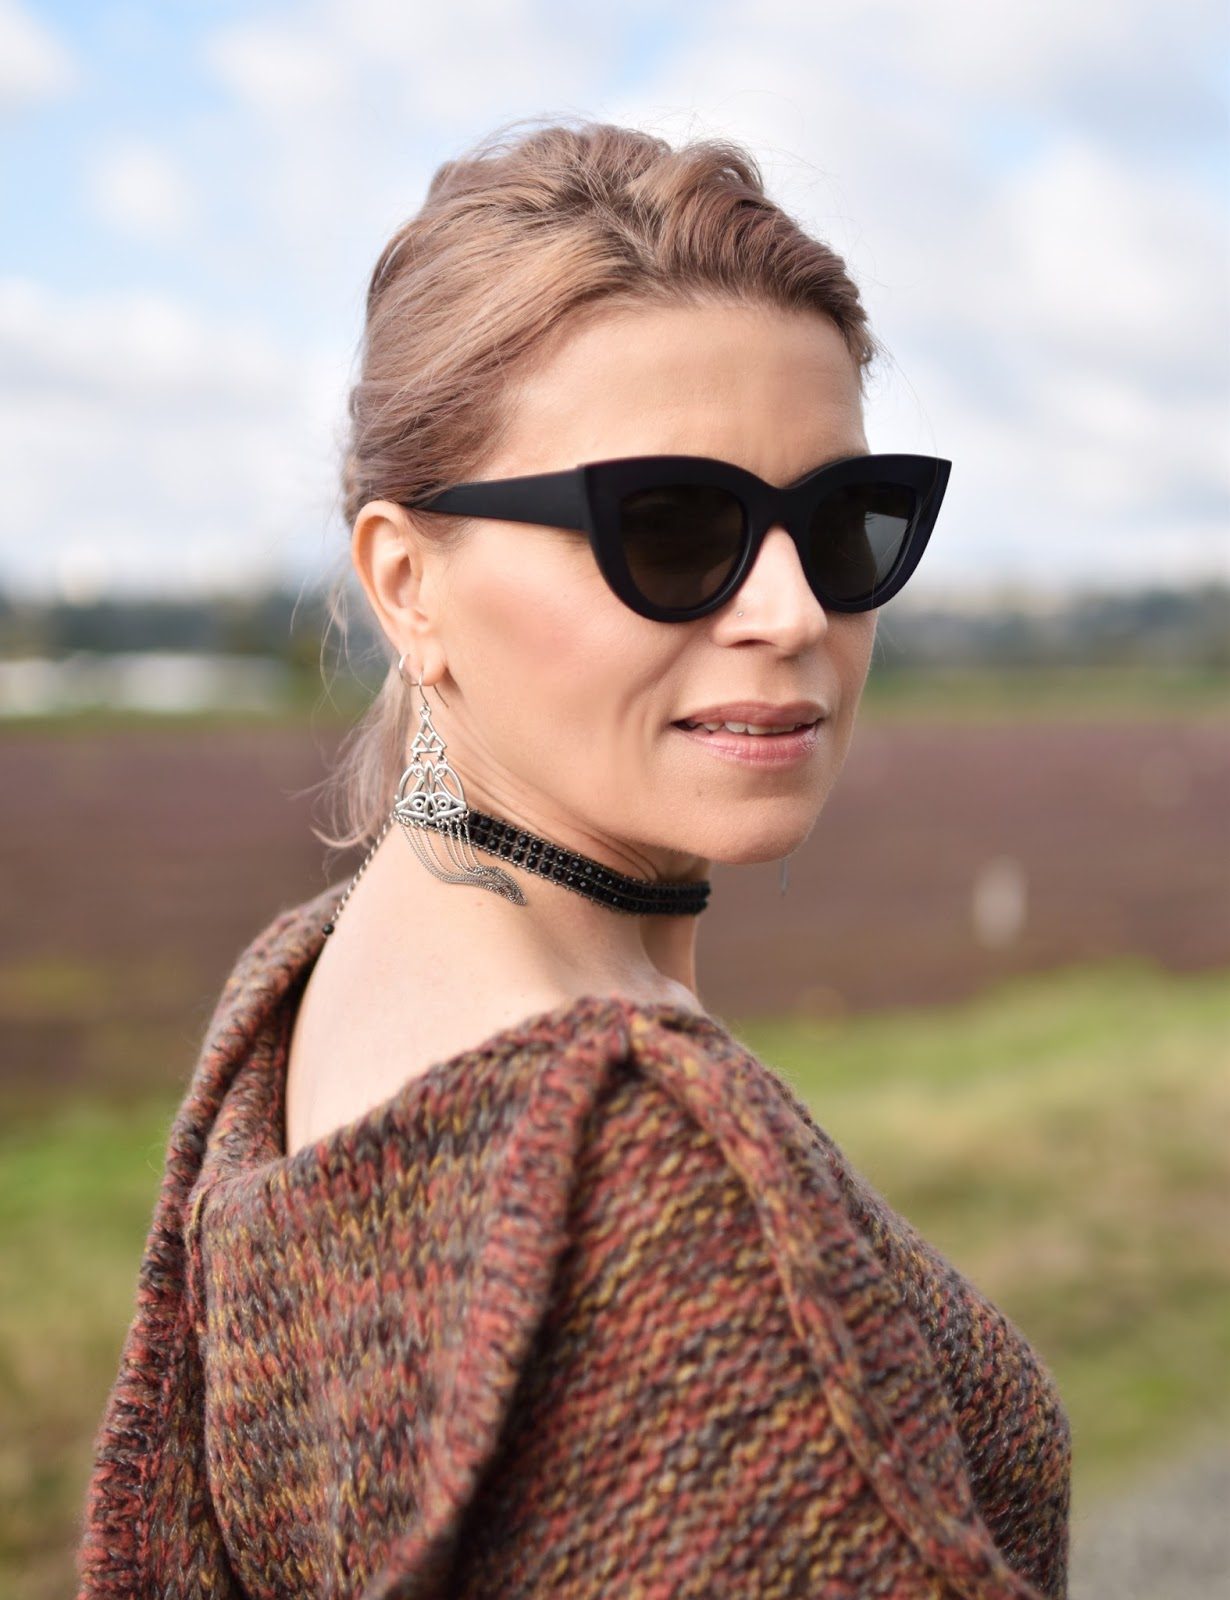 Outfit inspiration c/o Monika Faulkner - fringy poncho-sweater, beaded choker, cat-eye sunglasses